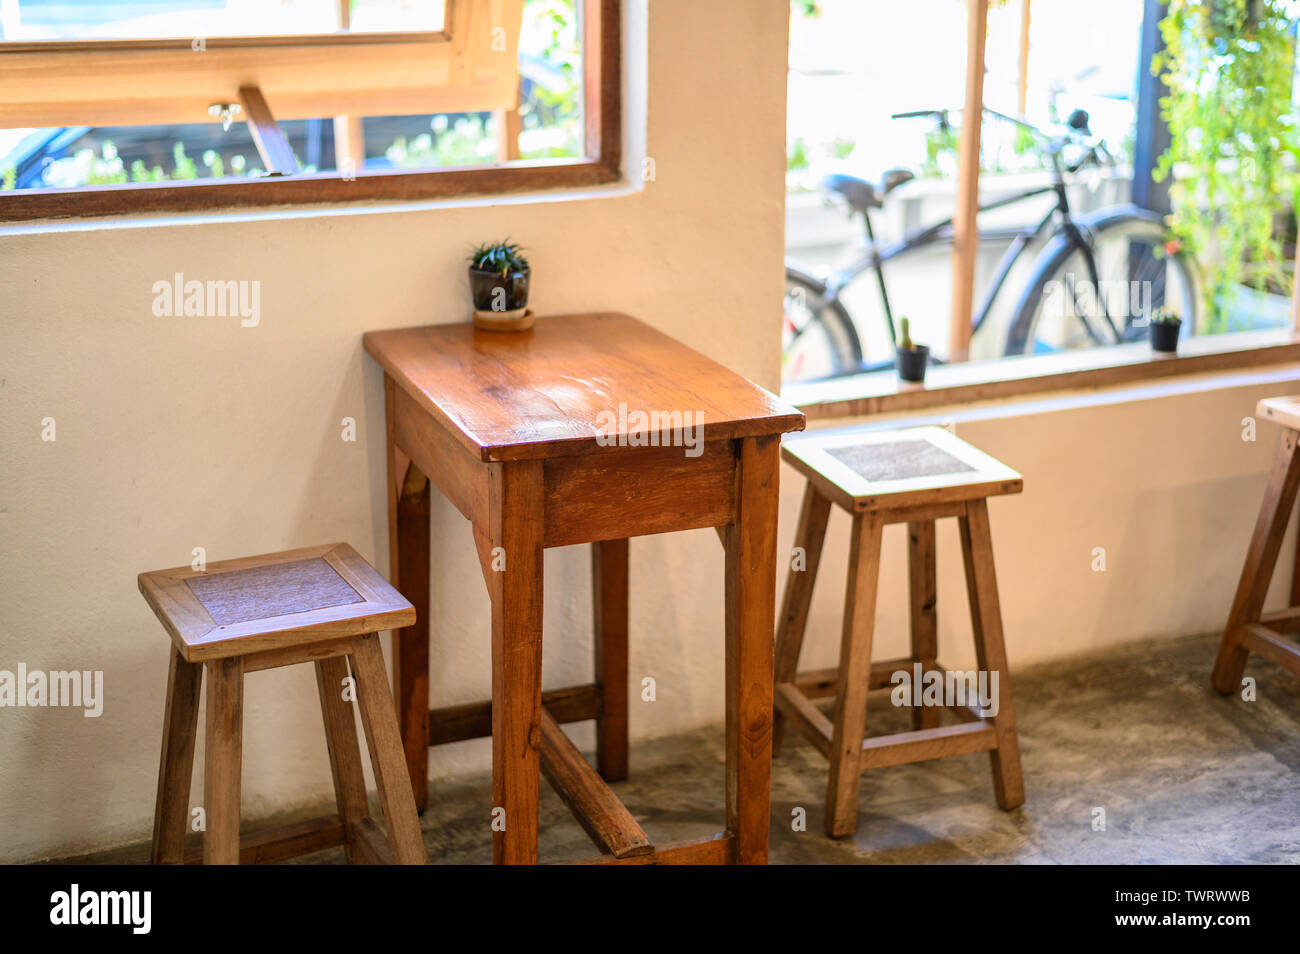 Wooden Table And Chairs For Customers In Coffee Shop Stock Photo Alamy